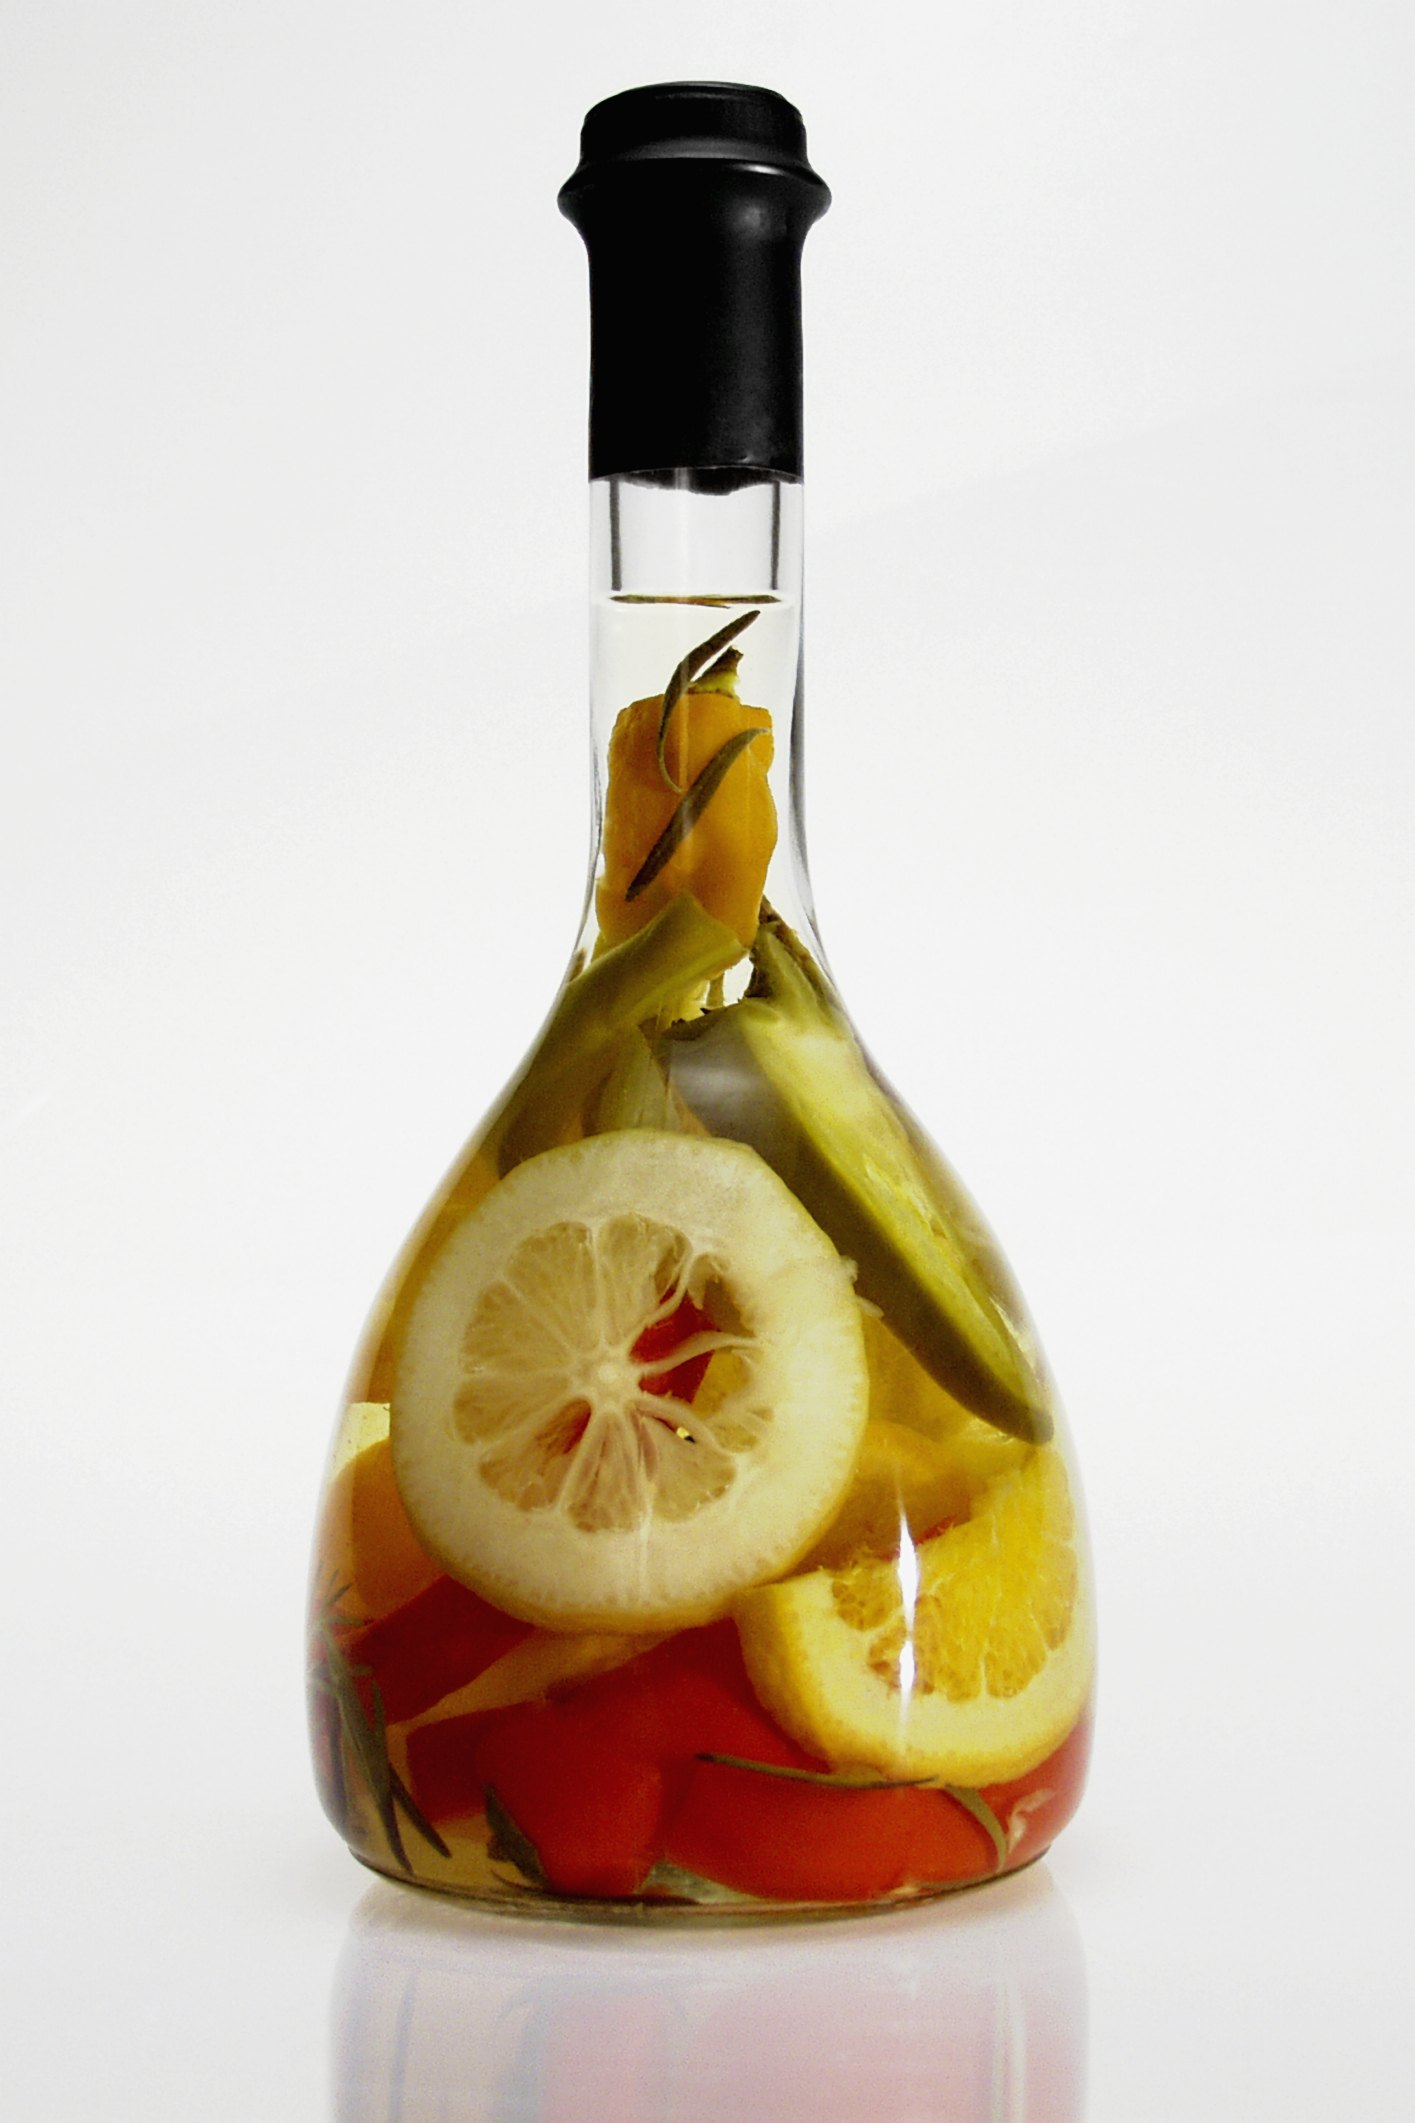 Decorative Infused Olive Oil: How To Fill A Bottle With Fruit And Vegetables In Oil For